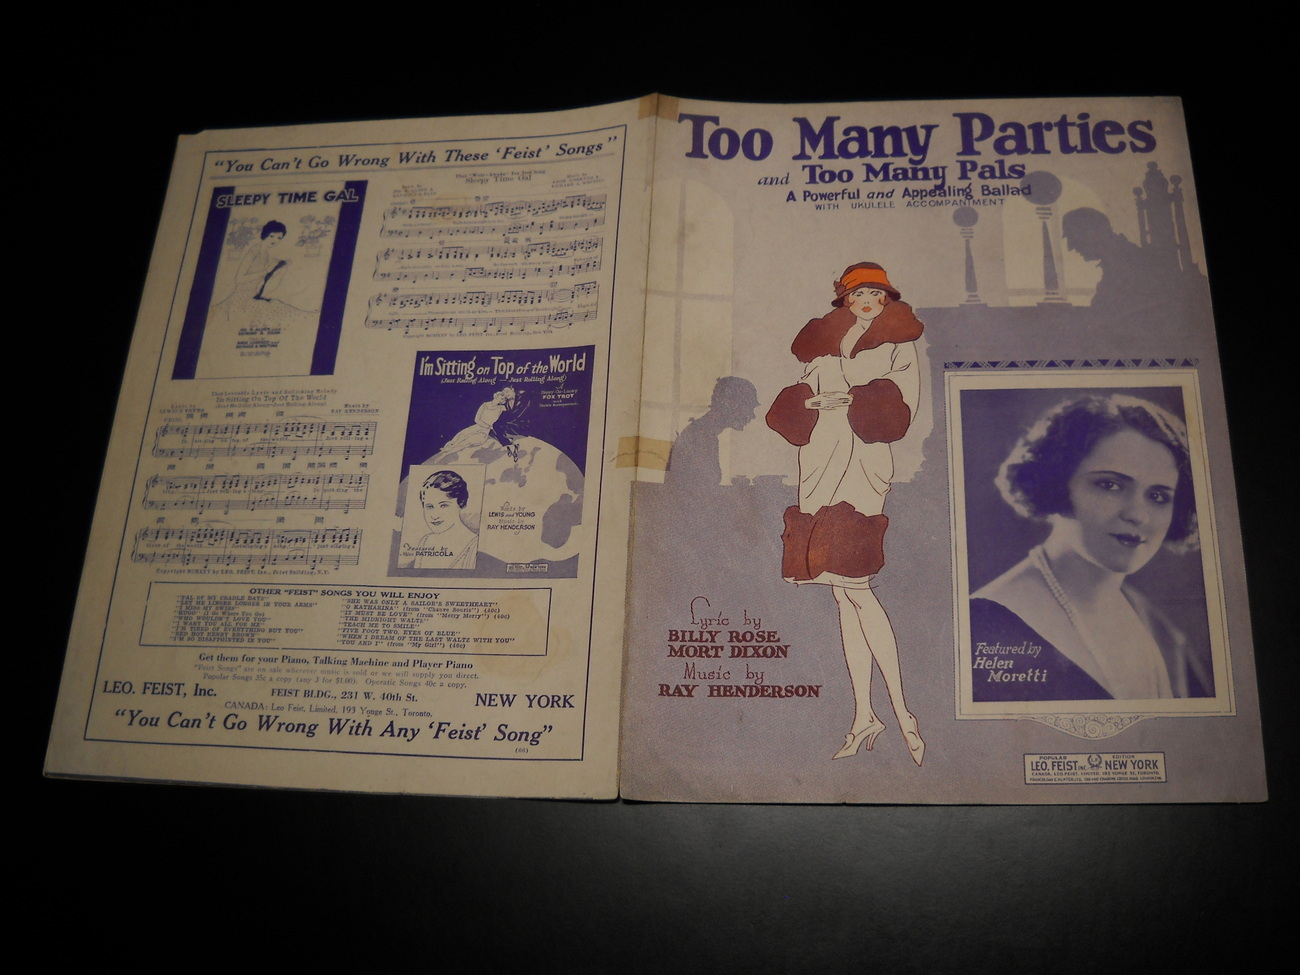 Sheet_music_too_many_parties_and_too_many_pals_helen_moretti_billy_rose_1925_leo_feist_04